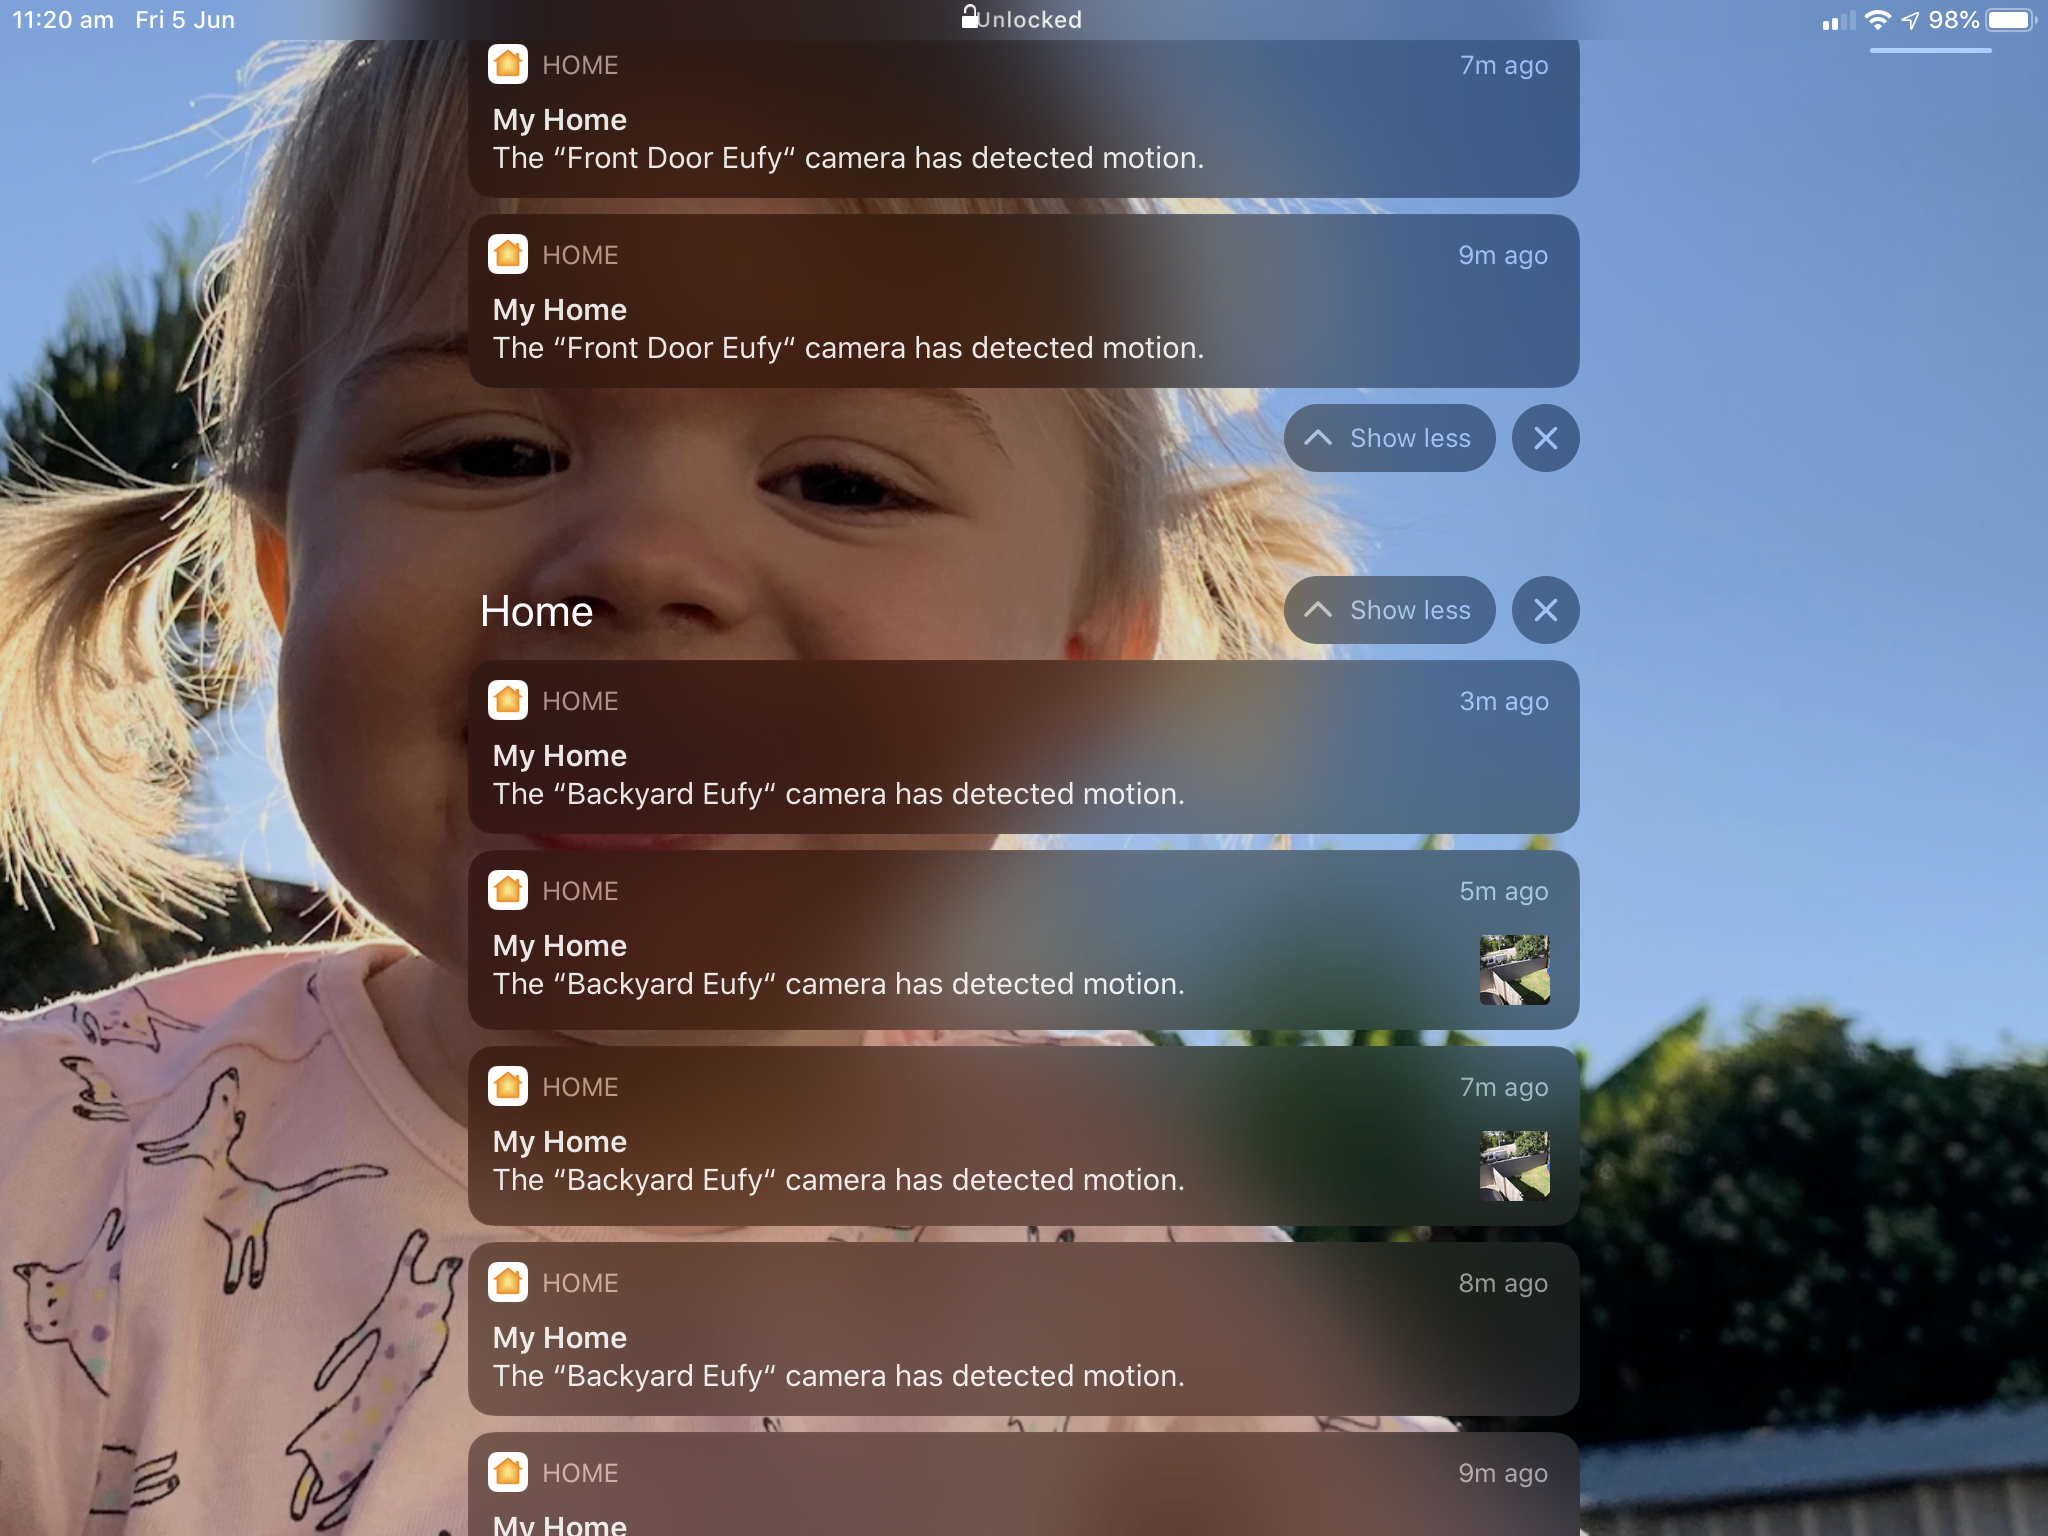 Why do thumbnail images of the movement appear on the Eufy 2C camera, but many times I don't have the setting set for the store preview and most of the time it will show me an image, but sometimes it won't?